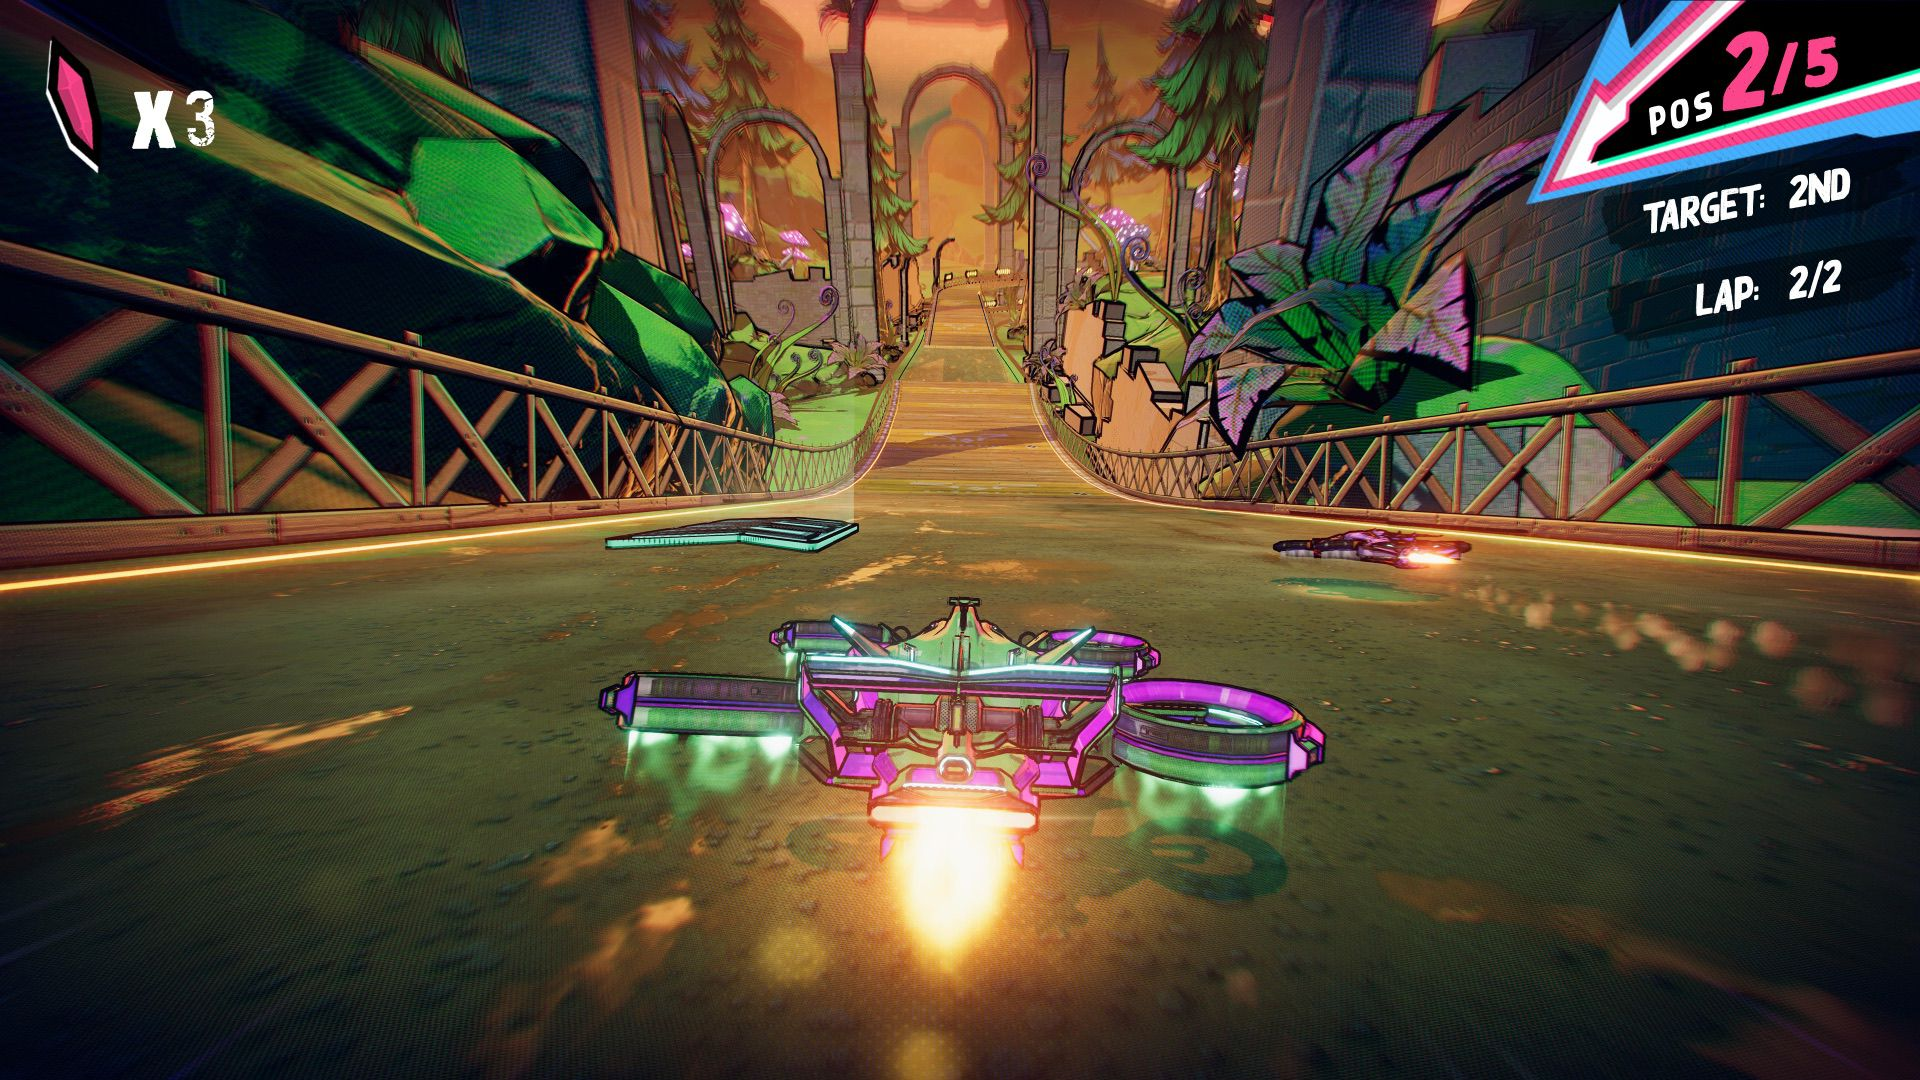 photo of Fast-Paced Racing Game 'Warp Drive' With Teleporting Feature Now Available on Apple Arcade image